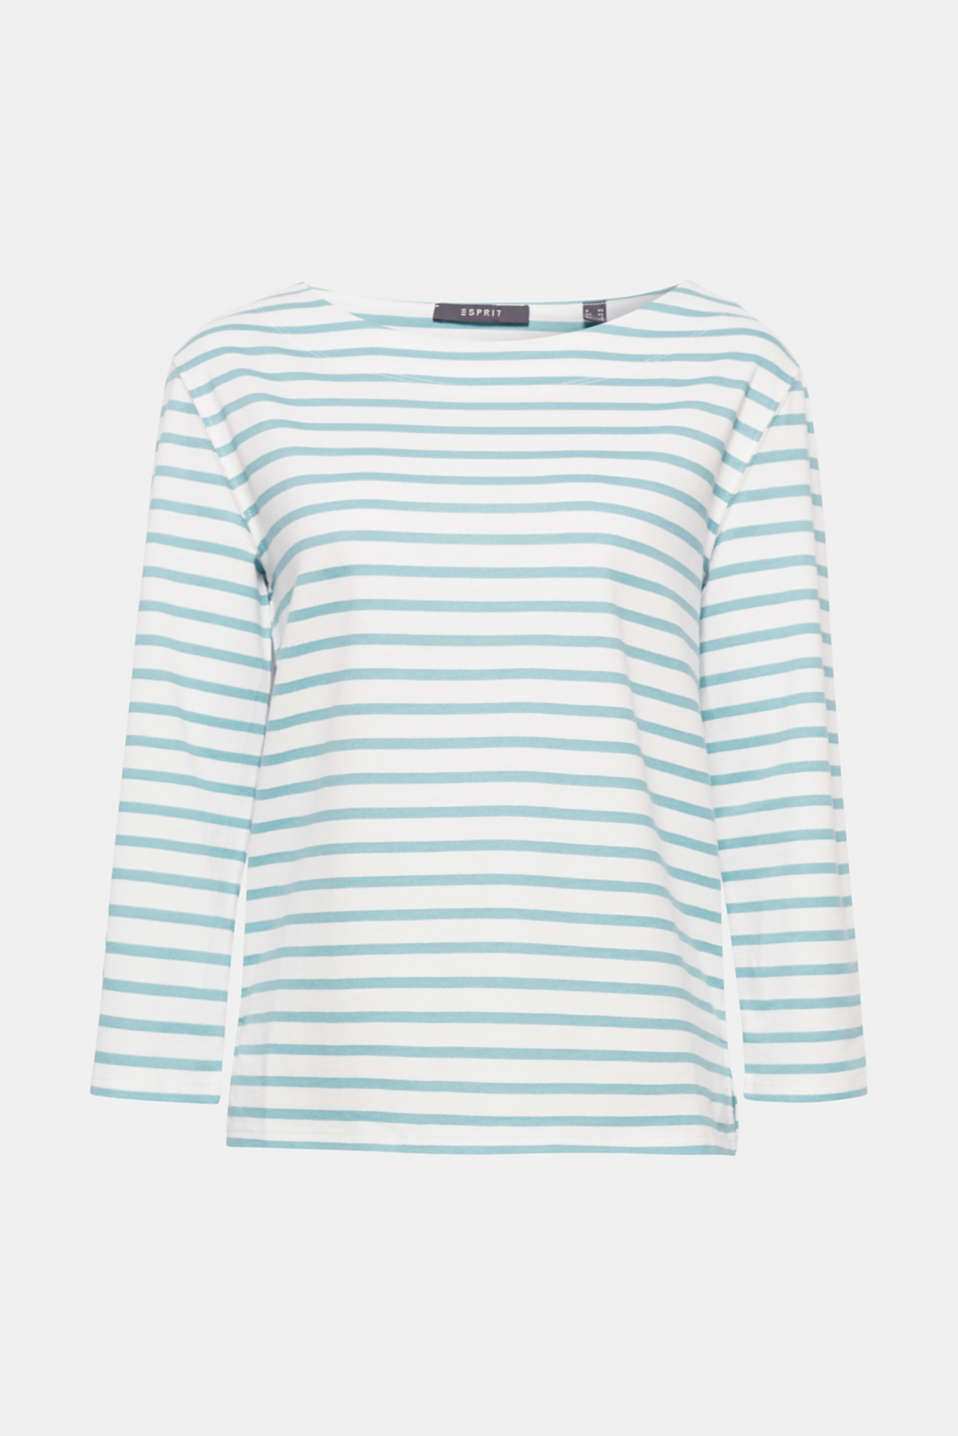 Casual favourite: this striped top stands out thanks to its soft texture and oval elbow patches!